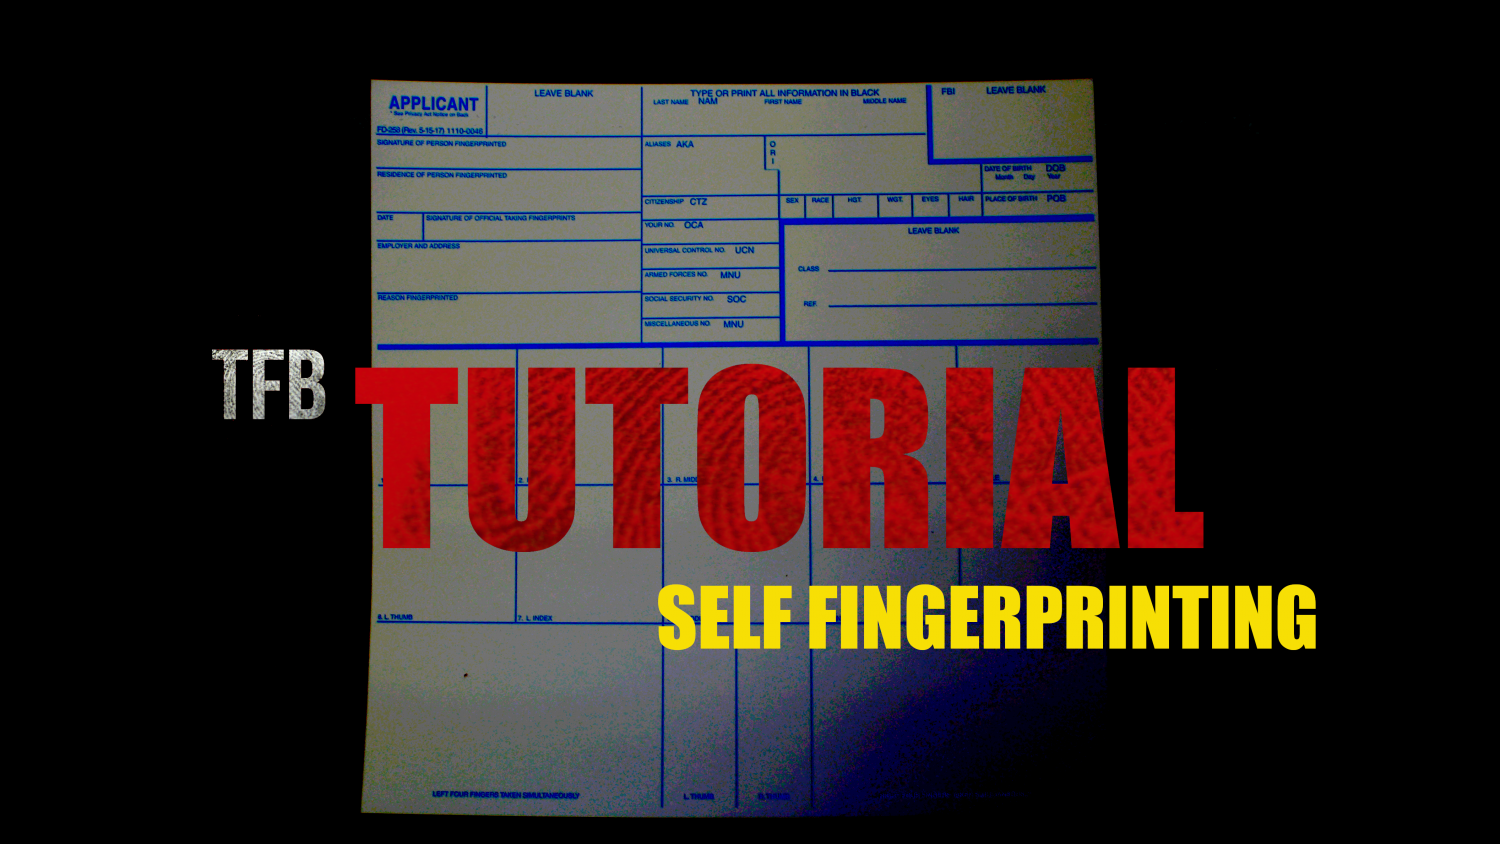 How To Fingerprint Yourself For NFA Applications -The Firearm Blog